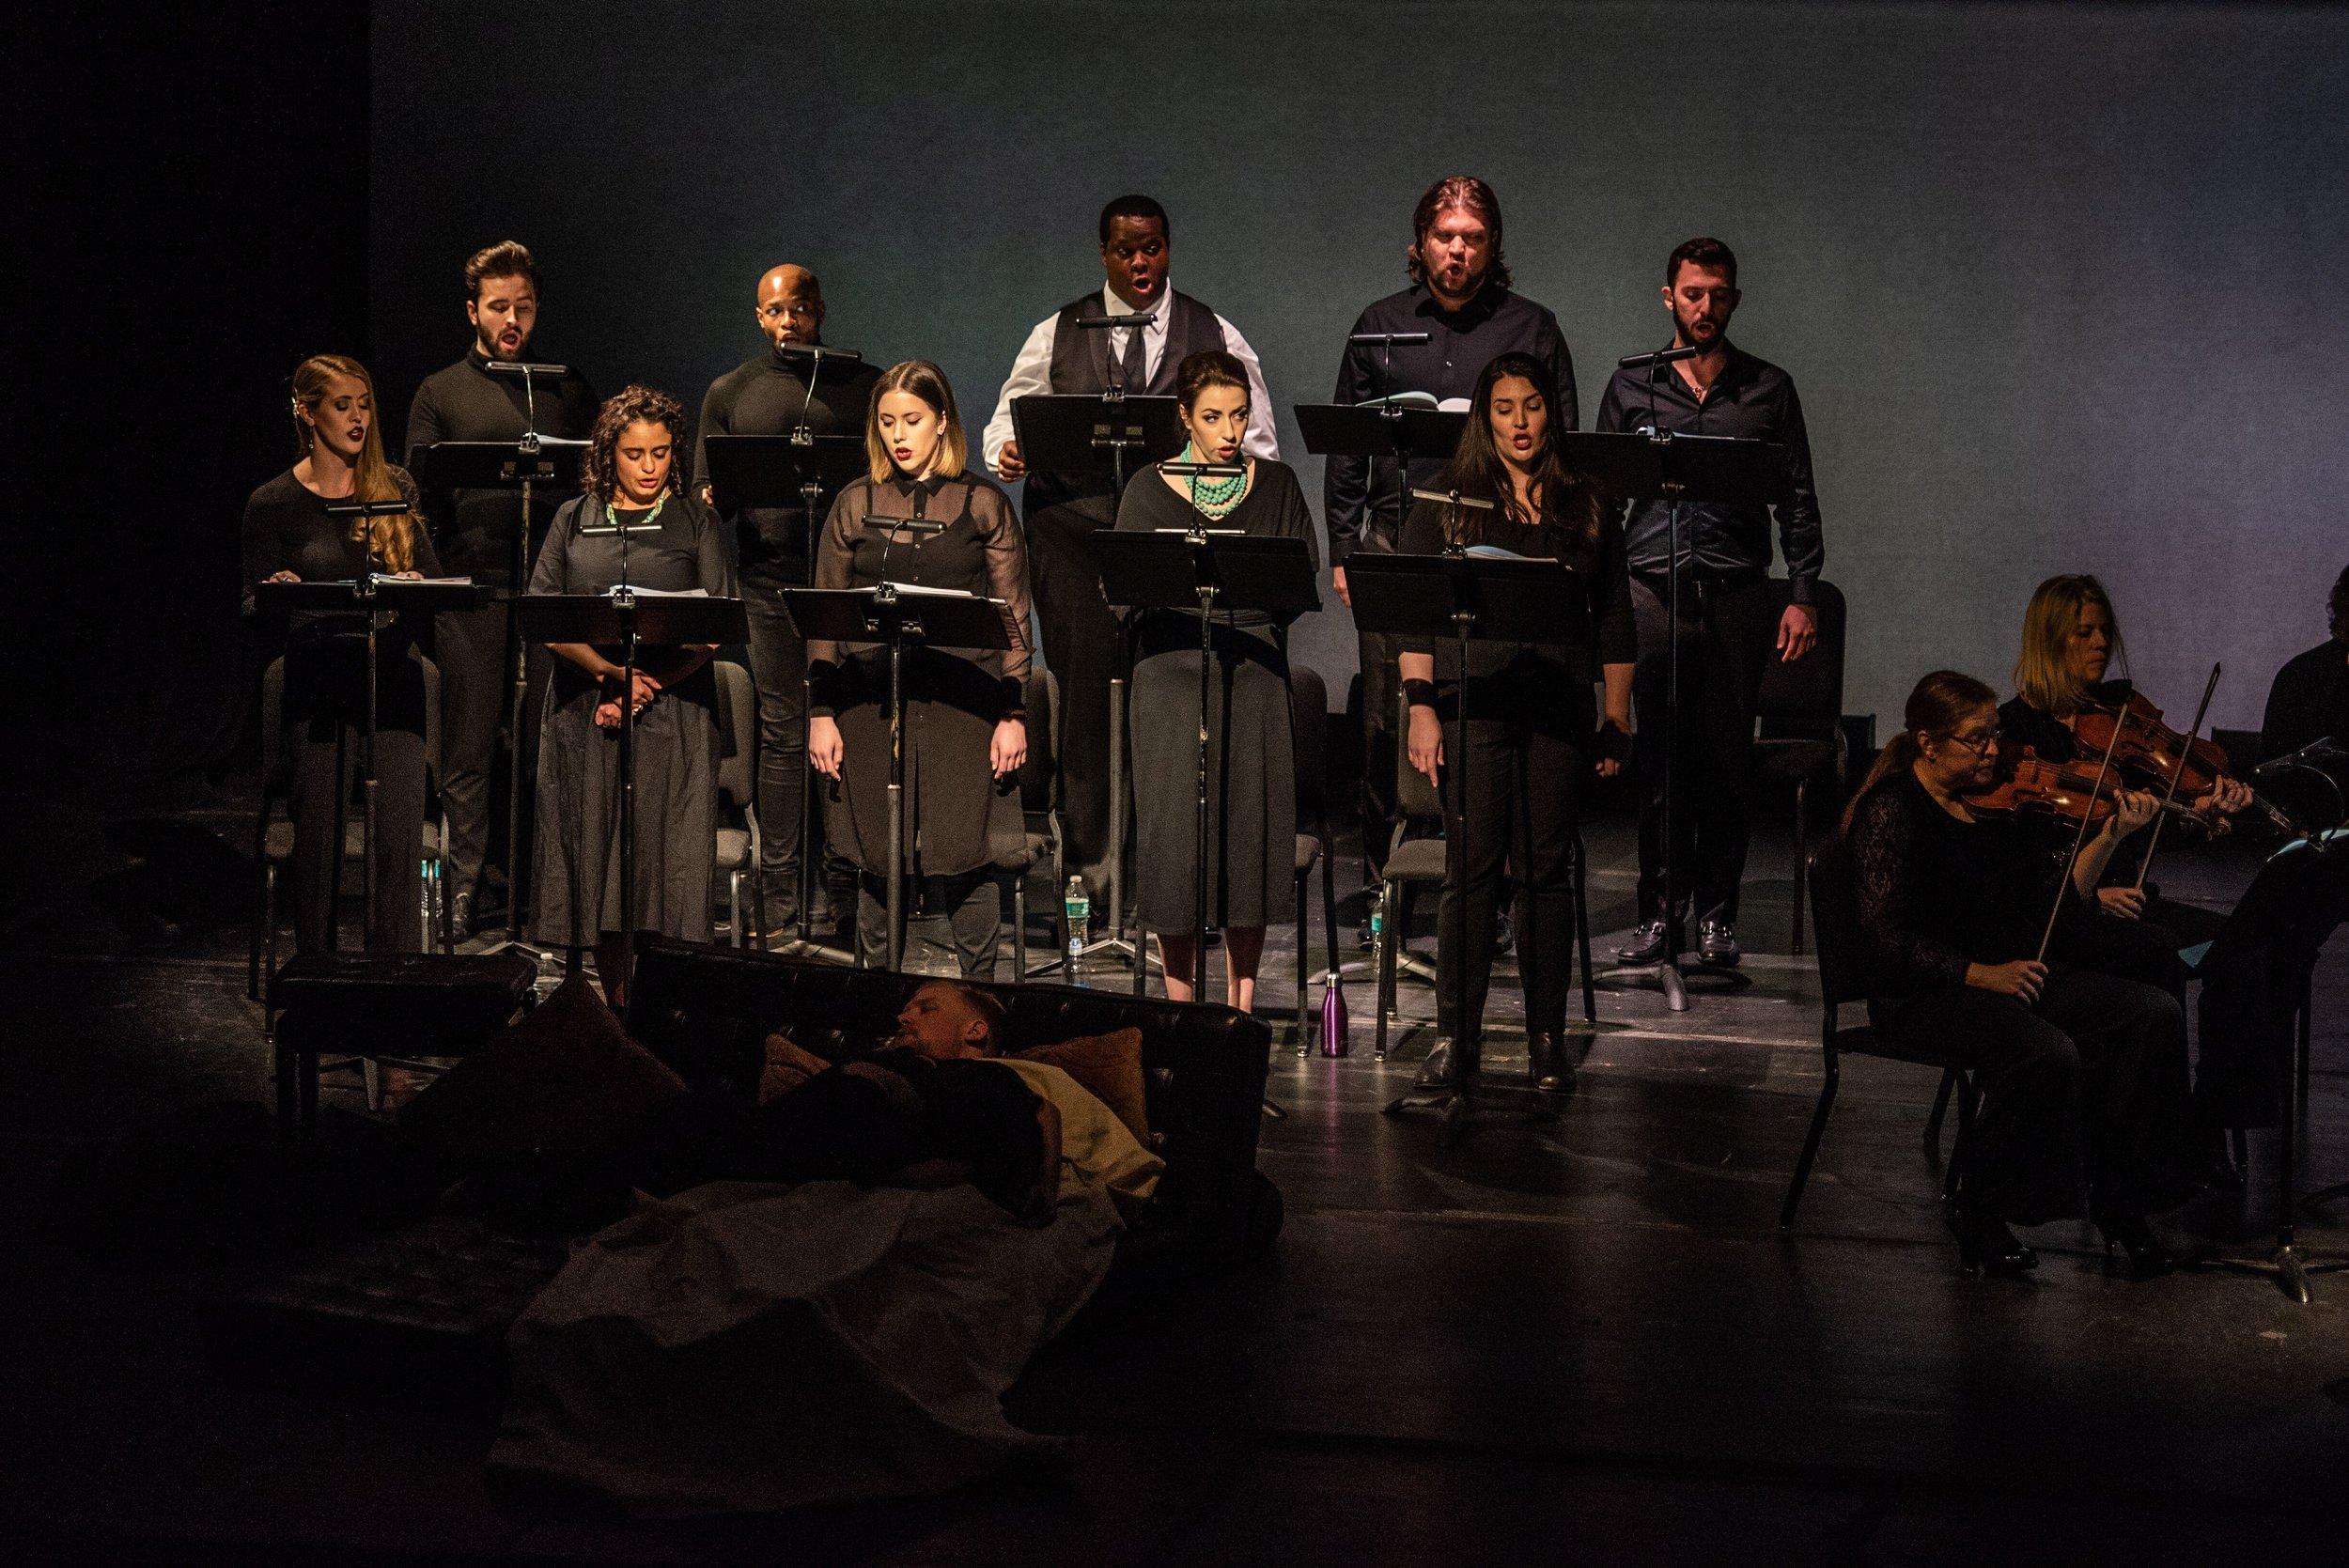 With the unhappy lovers in mortal repose, the chorus (front row, left to right: Meagan Sill, Summer Hassan, Nicole Thomas, Renée Rapier, and Leah Marie Heater; back row, left to right: Joshua Sanders, Frederkick Ballantine, Joshua Conyers, Anthony Robin Schneider, and Matthew Fleisher.) provides closing remarks. Photo by Angelina Namkung for Wolf Trap; courtesy of Washington Concert Opera and Wolf Trap Opera.